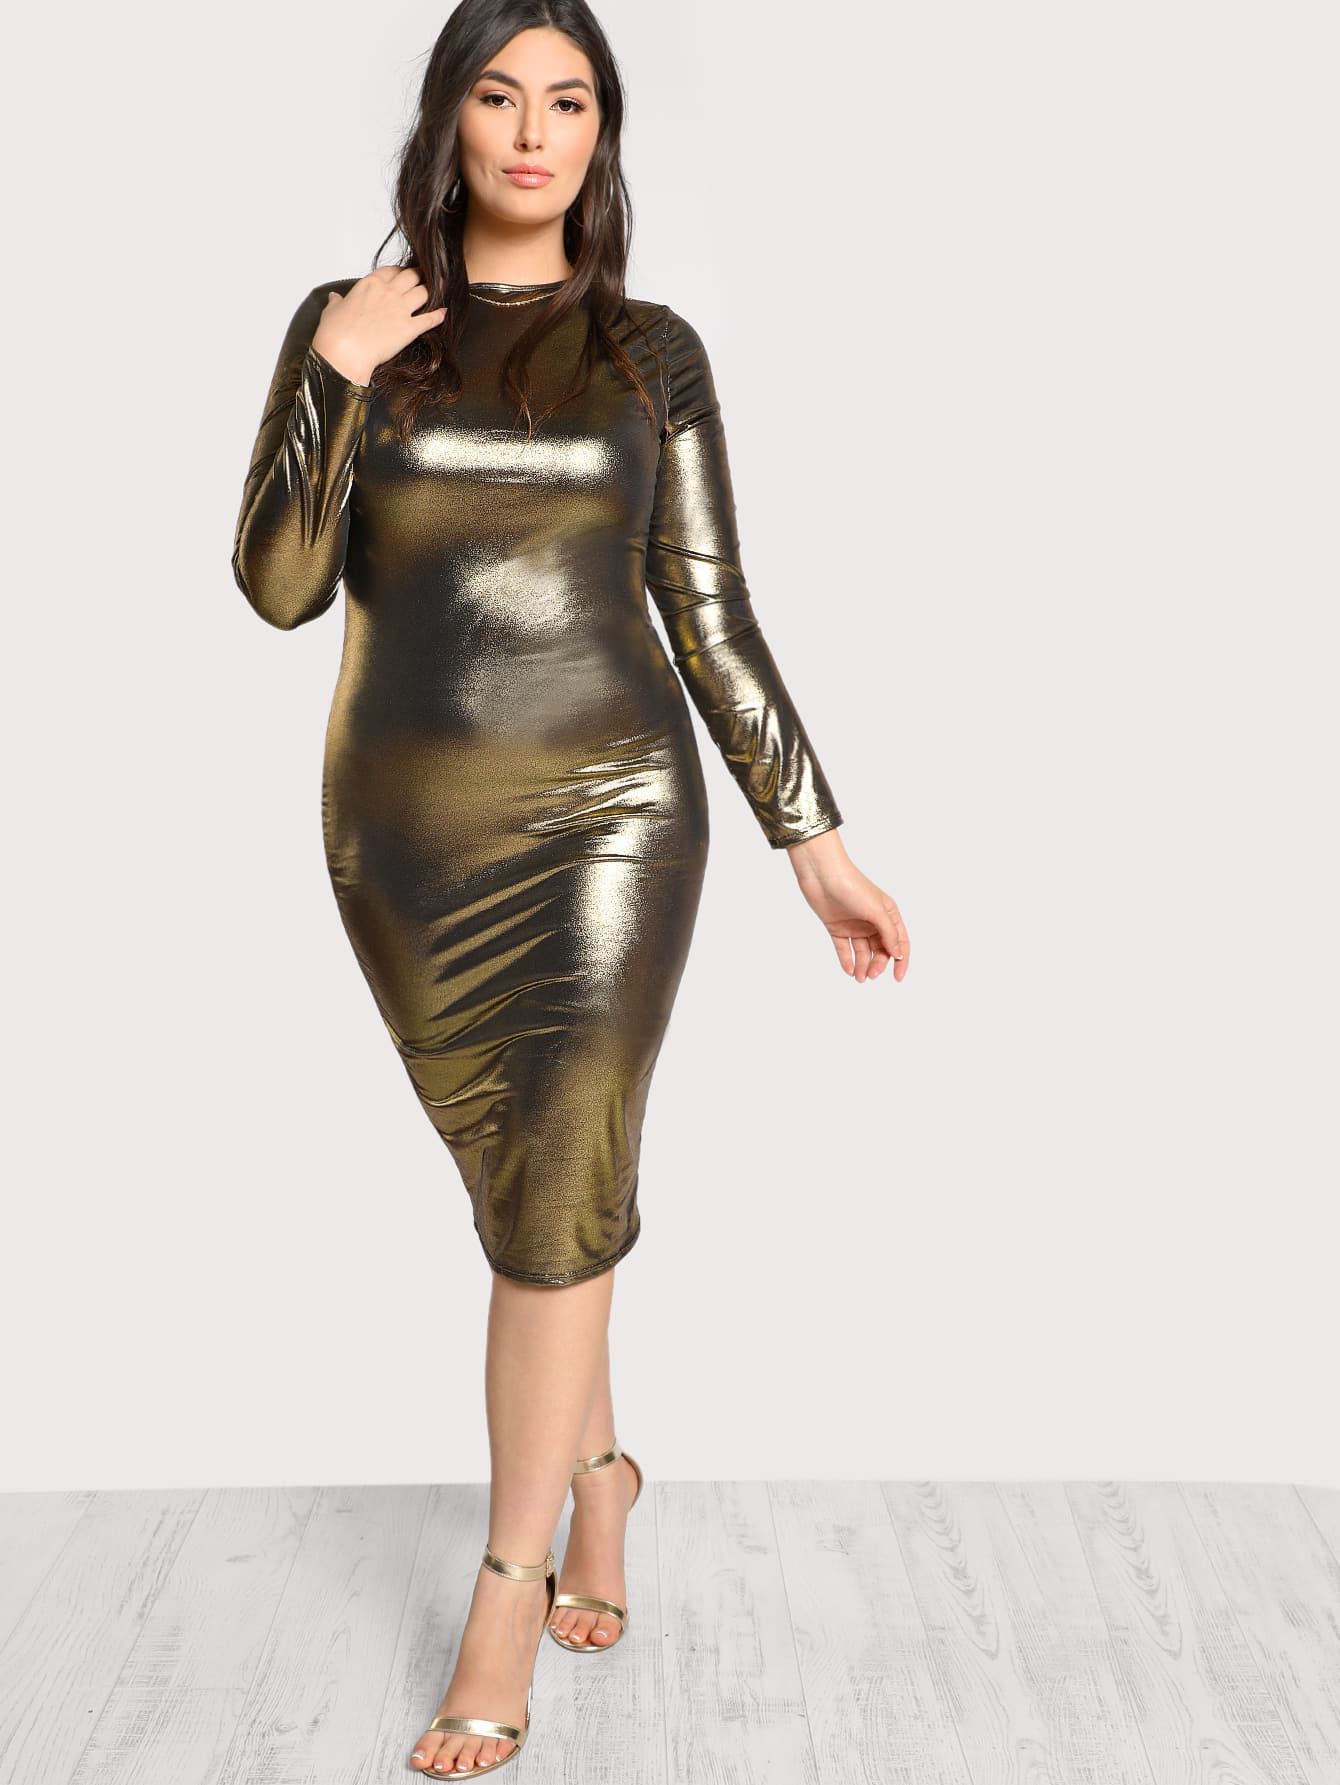 Metallic Form Fitting Dress burett b 4205 nbsa